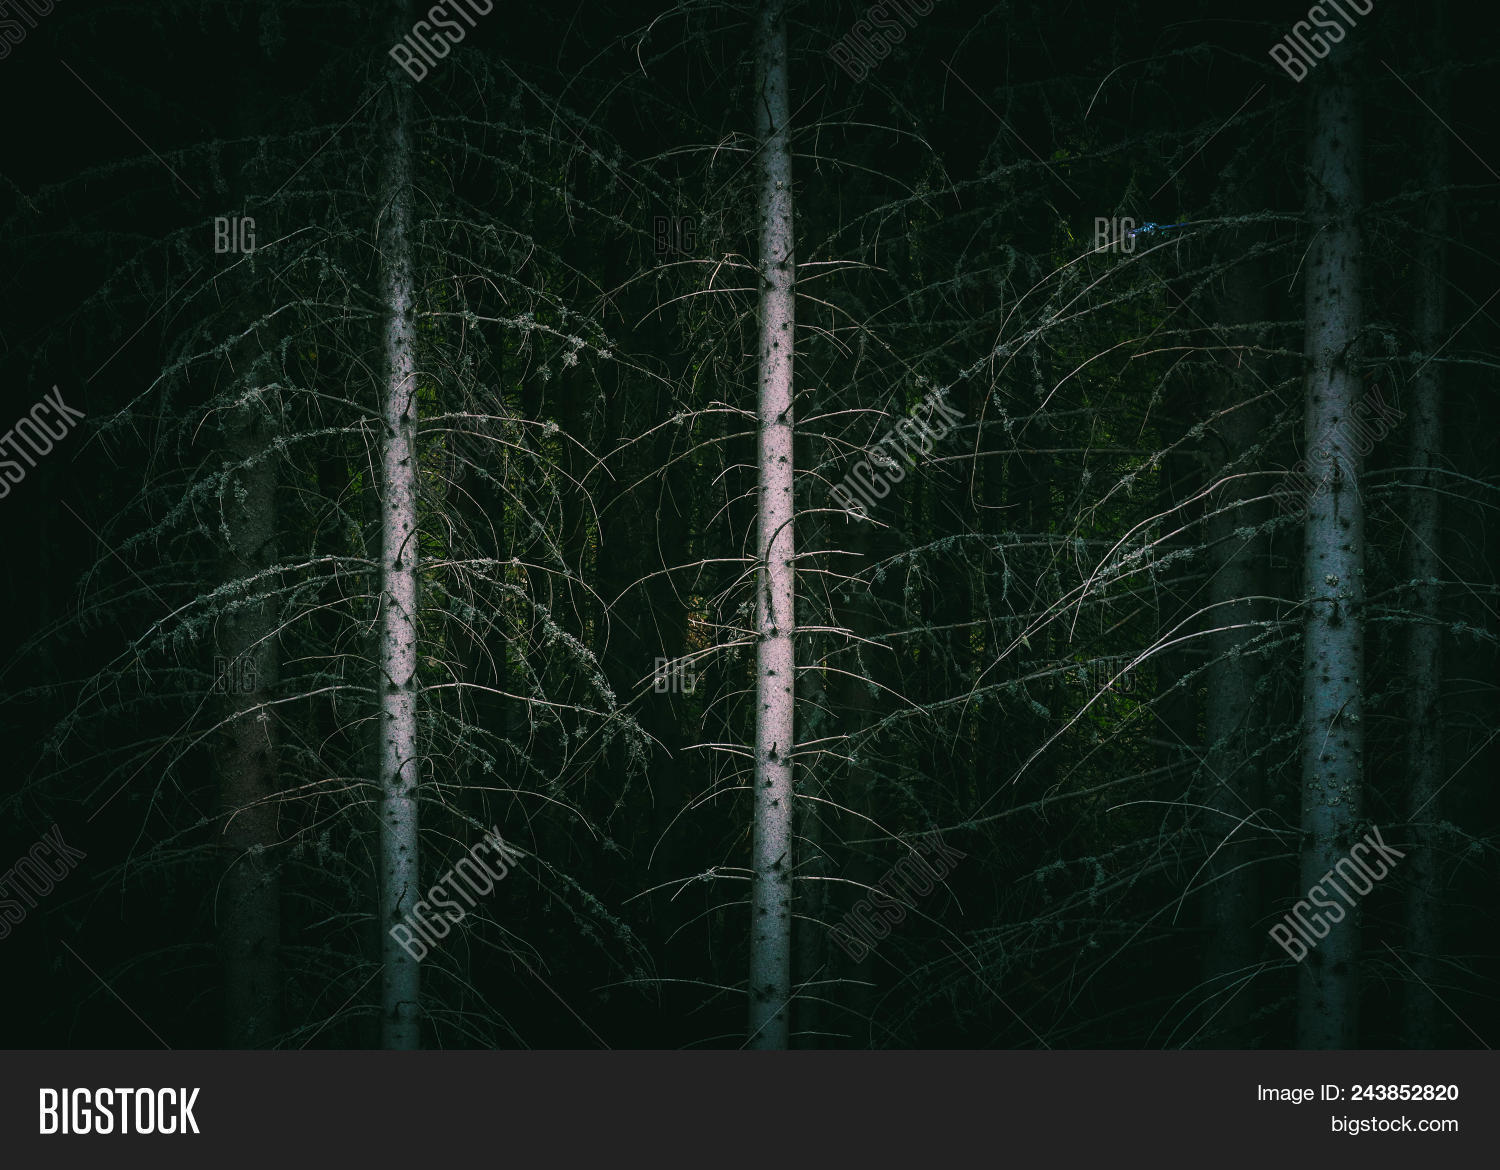 Pine Dark Night Creepy Image & Photo (Free Trial) | Bigstock